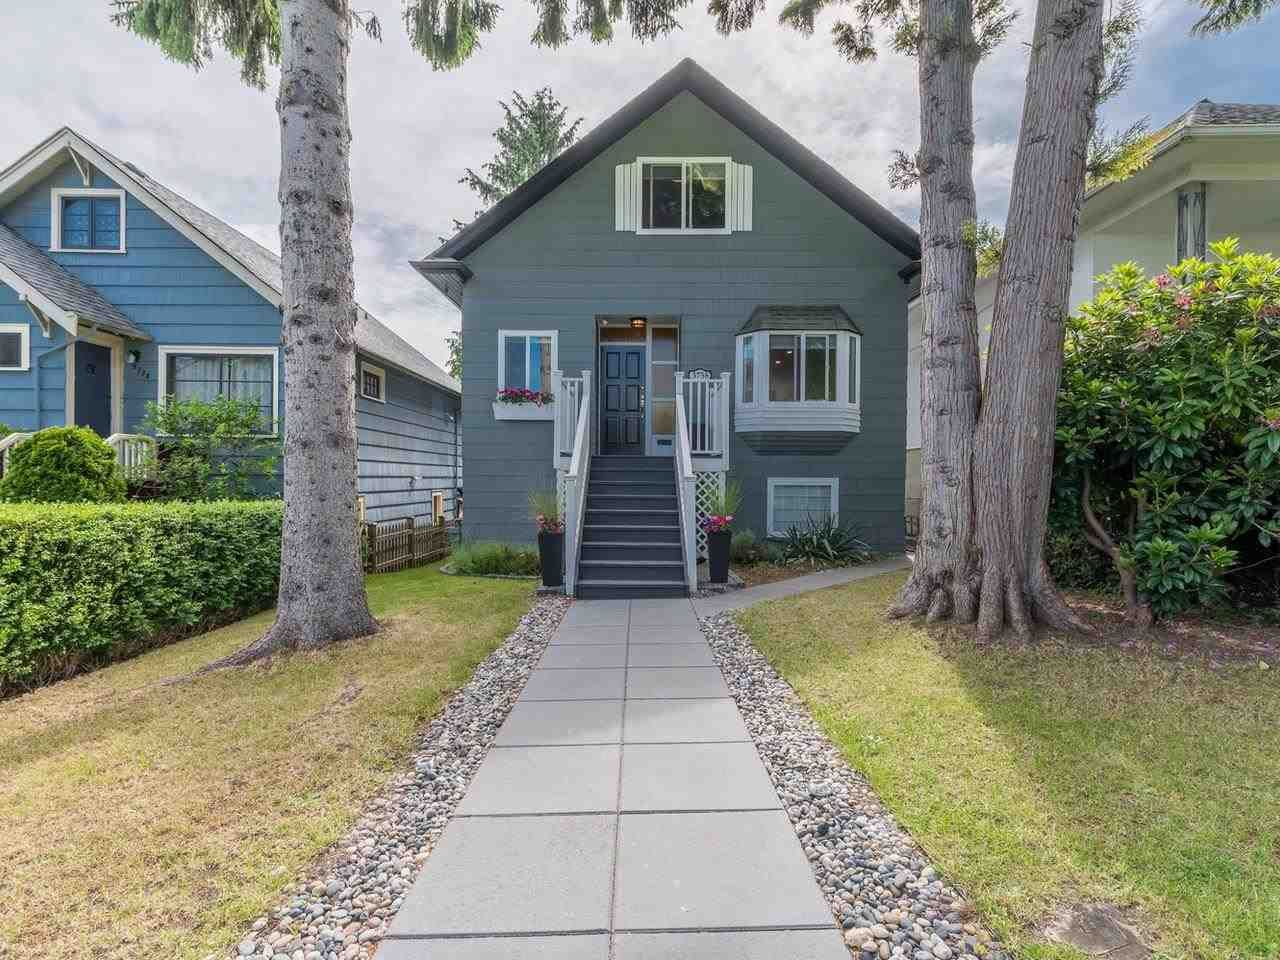 Main Photo: 3758 DUMFRIES Street in Vancouver: Knight House for sale (Vancouver East)  : MLS®# R2590666